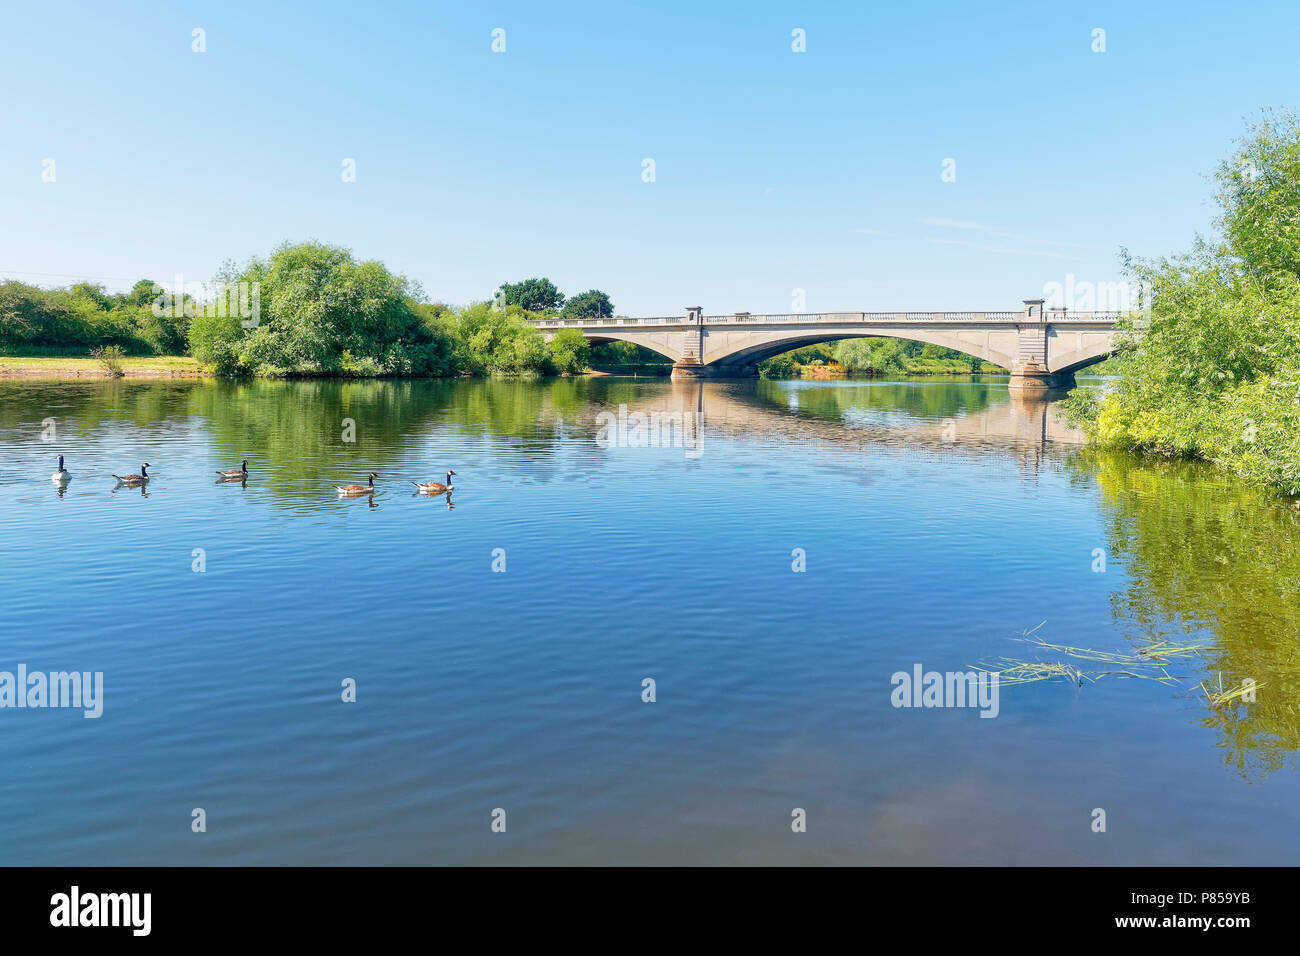 Five Canada Geese swim on the River Trent at Gunthorpe, Nottinghamshire, under a cloudless summer sky. - Stock Image